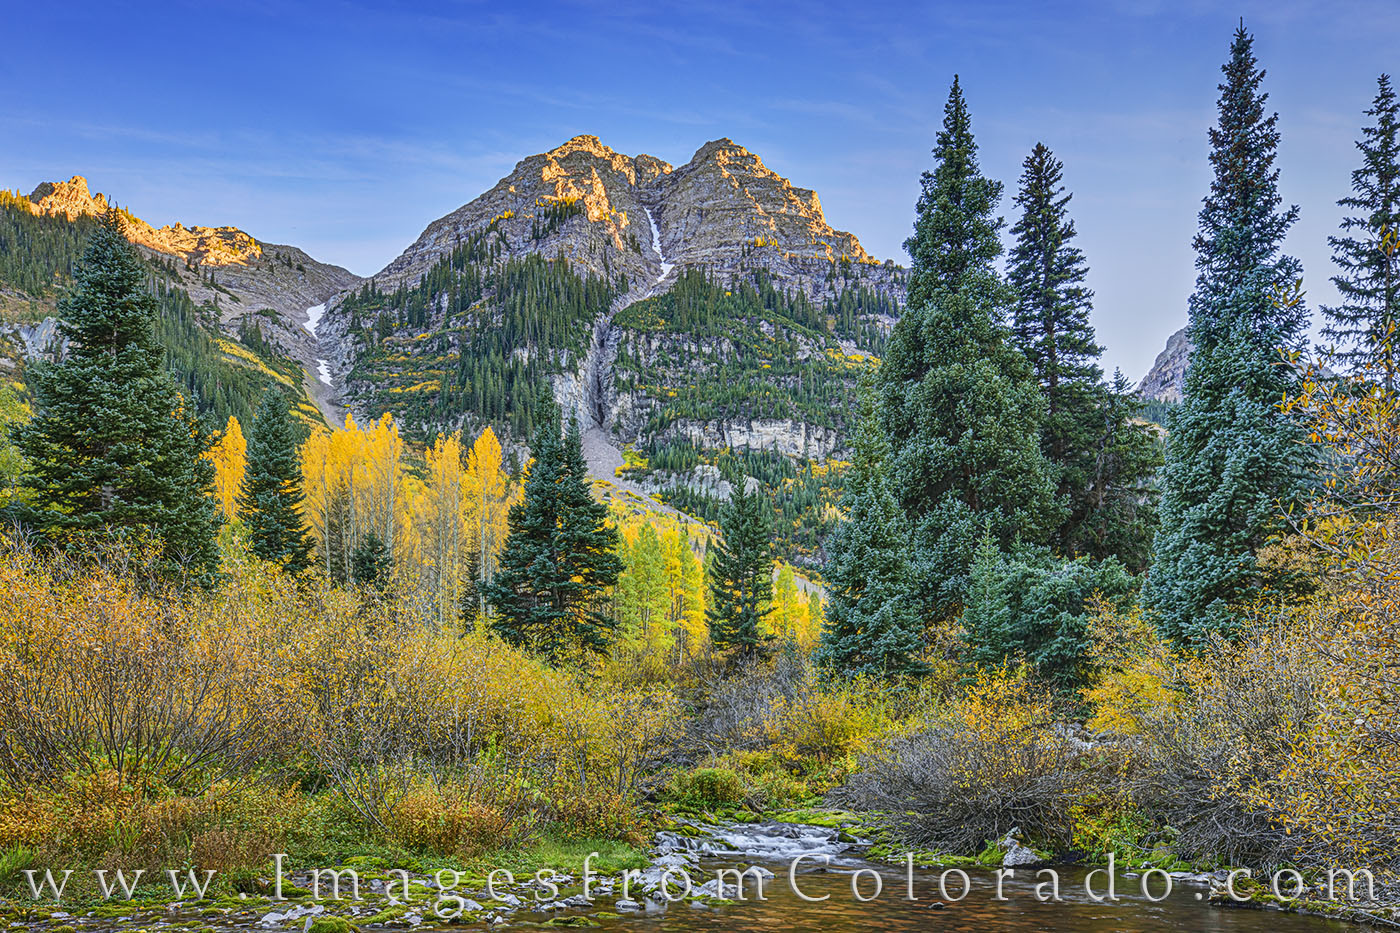 west maroon creek, maroon bells, fall, autumn, aspen, gold, water, creek, evening, photo